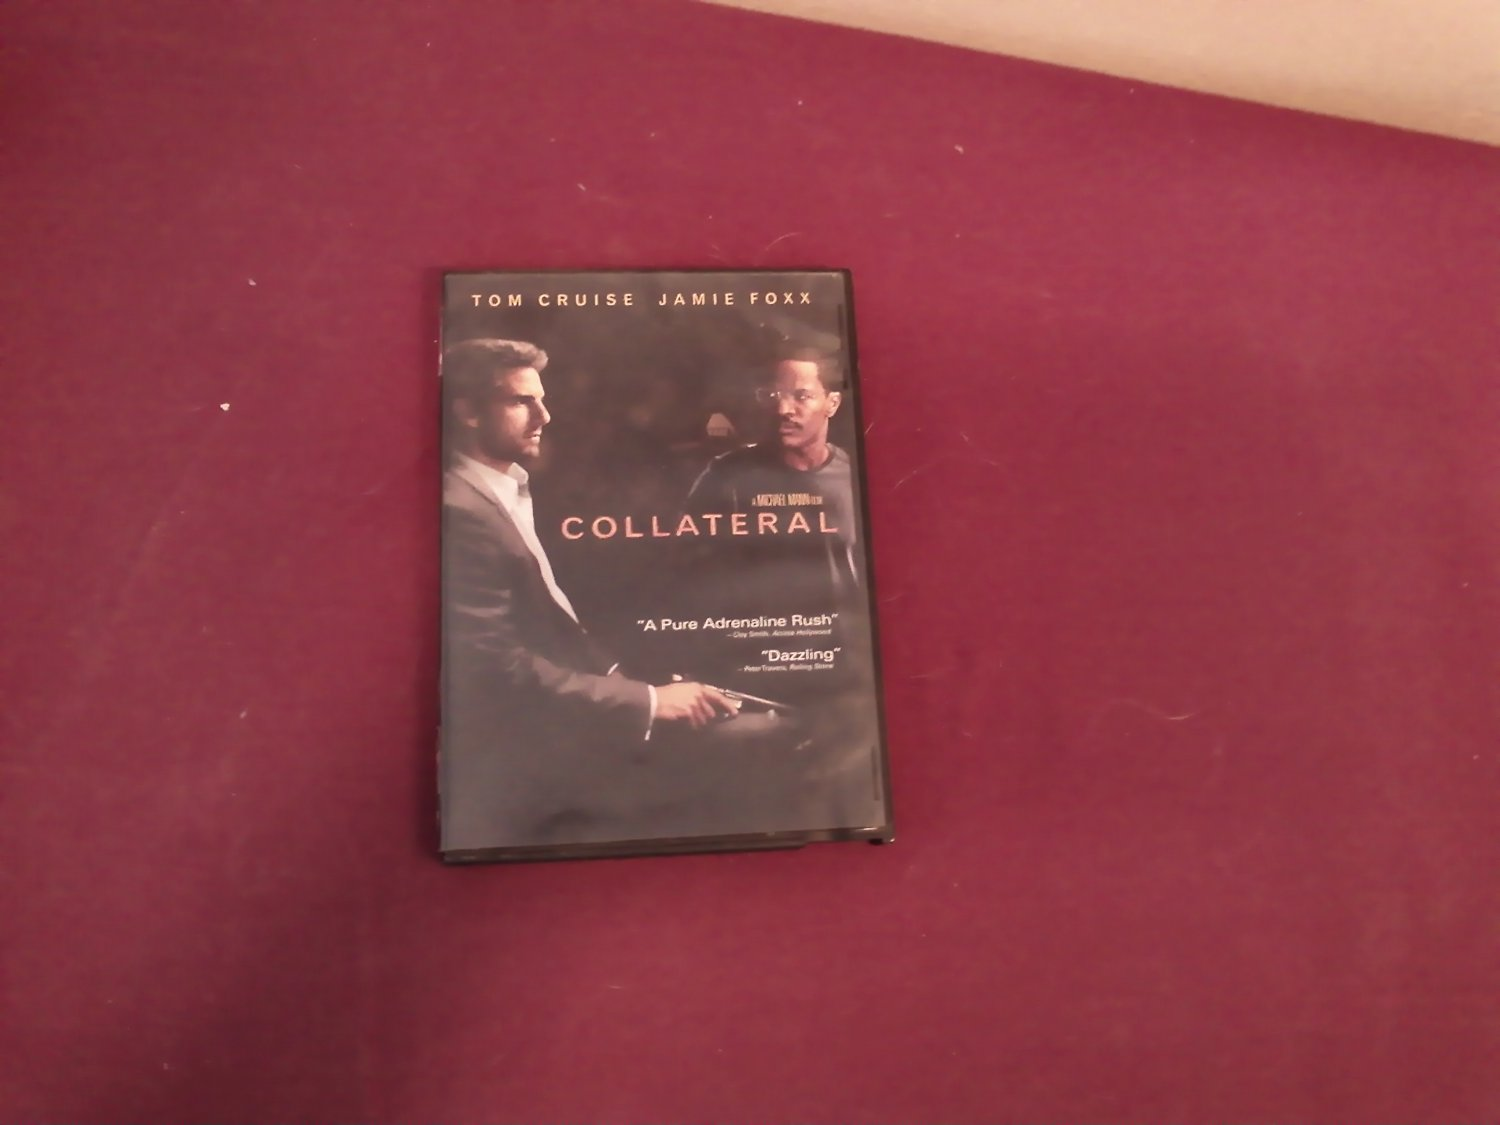 Collateral DVD Tom Cruise / Jamie Foxx Rated R 2004 Two Disc Paramount Pictures